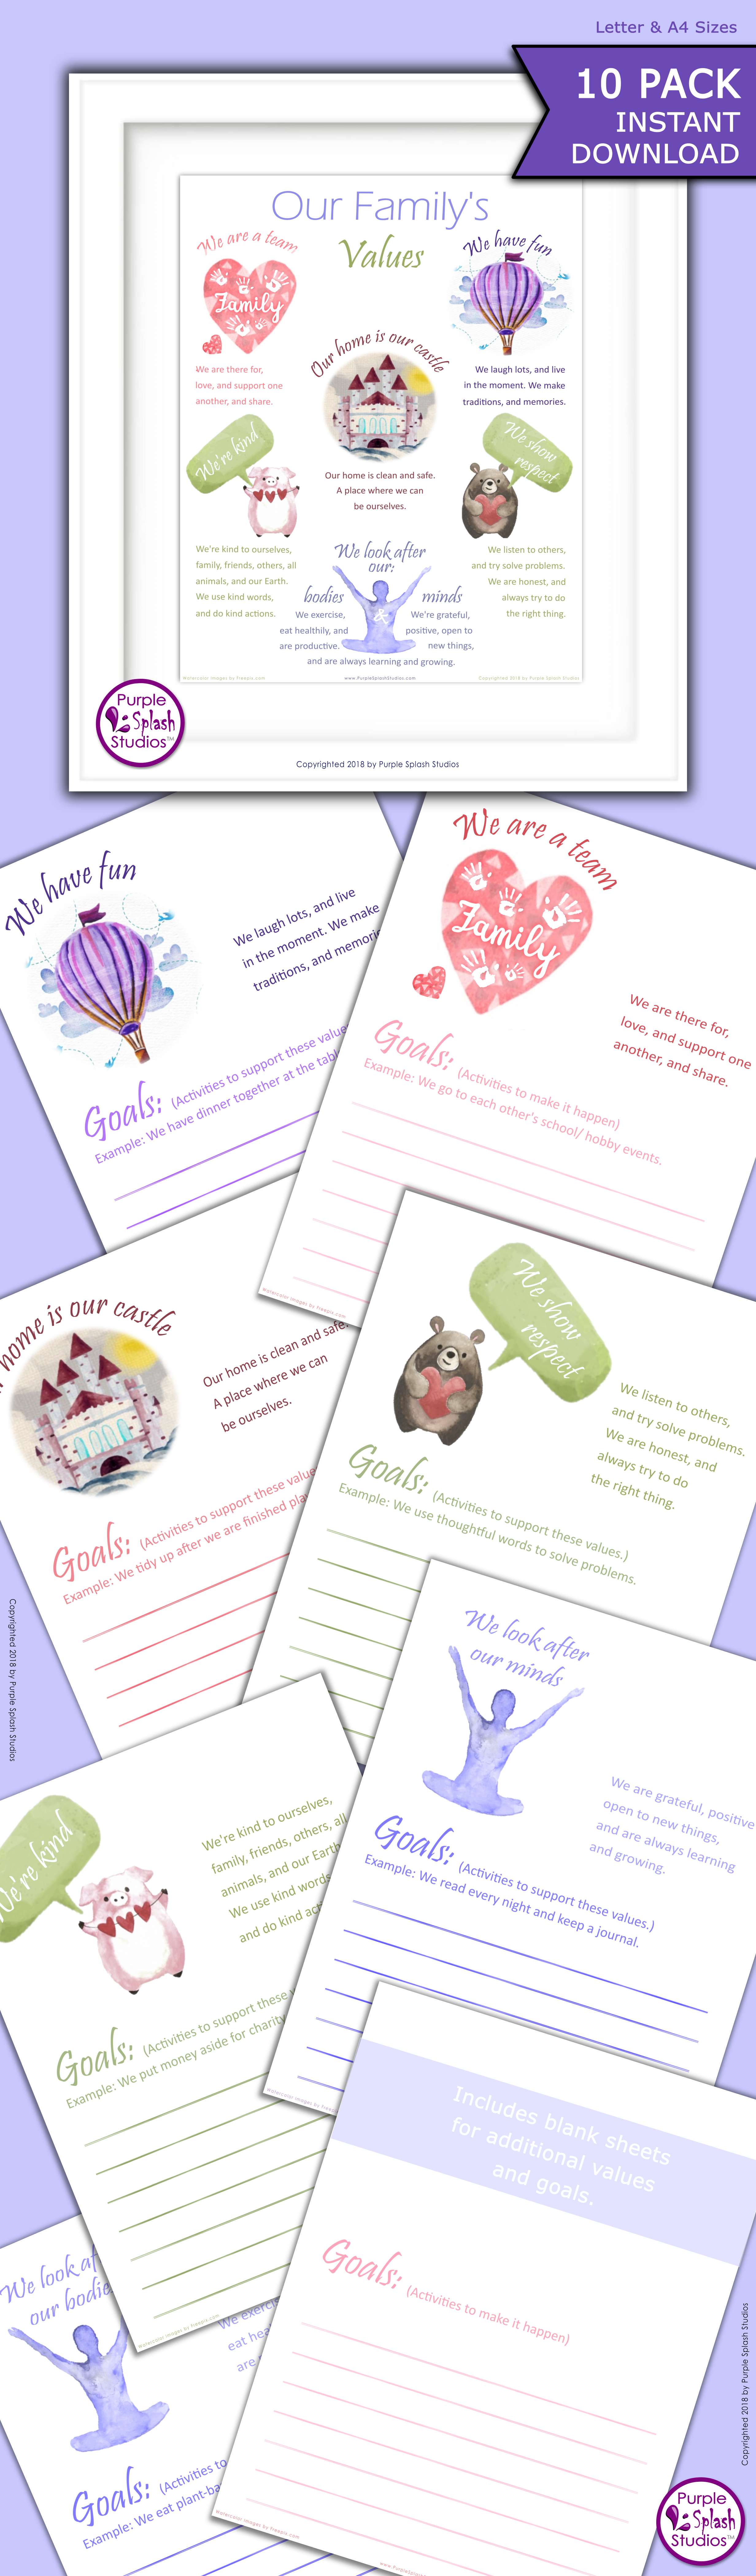 Family Values And Goal Worksheet Printa Adolescent